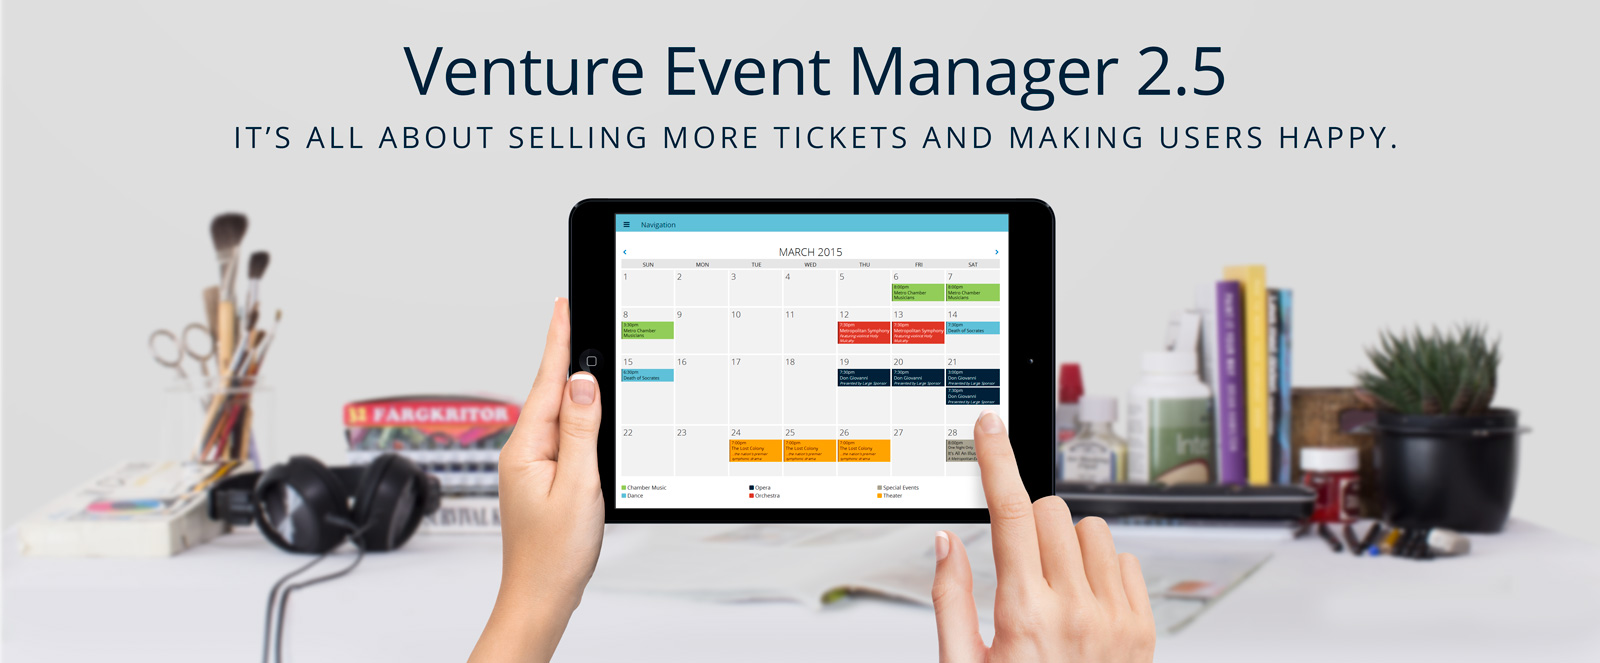 Venture Event Manager 2.5